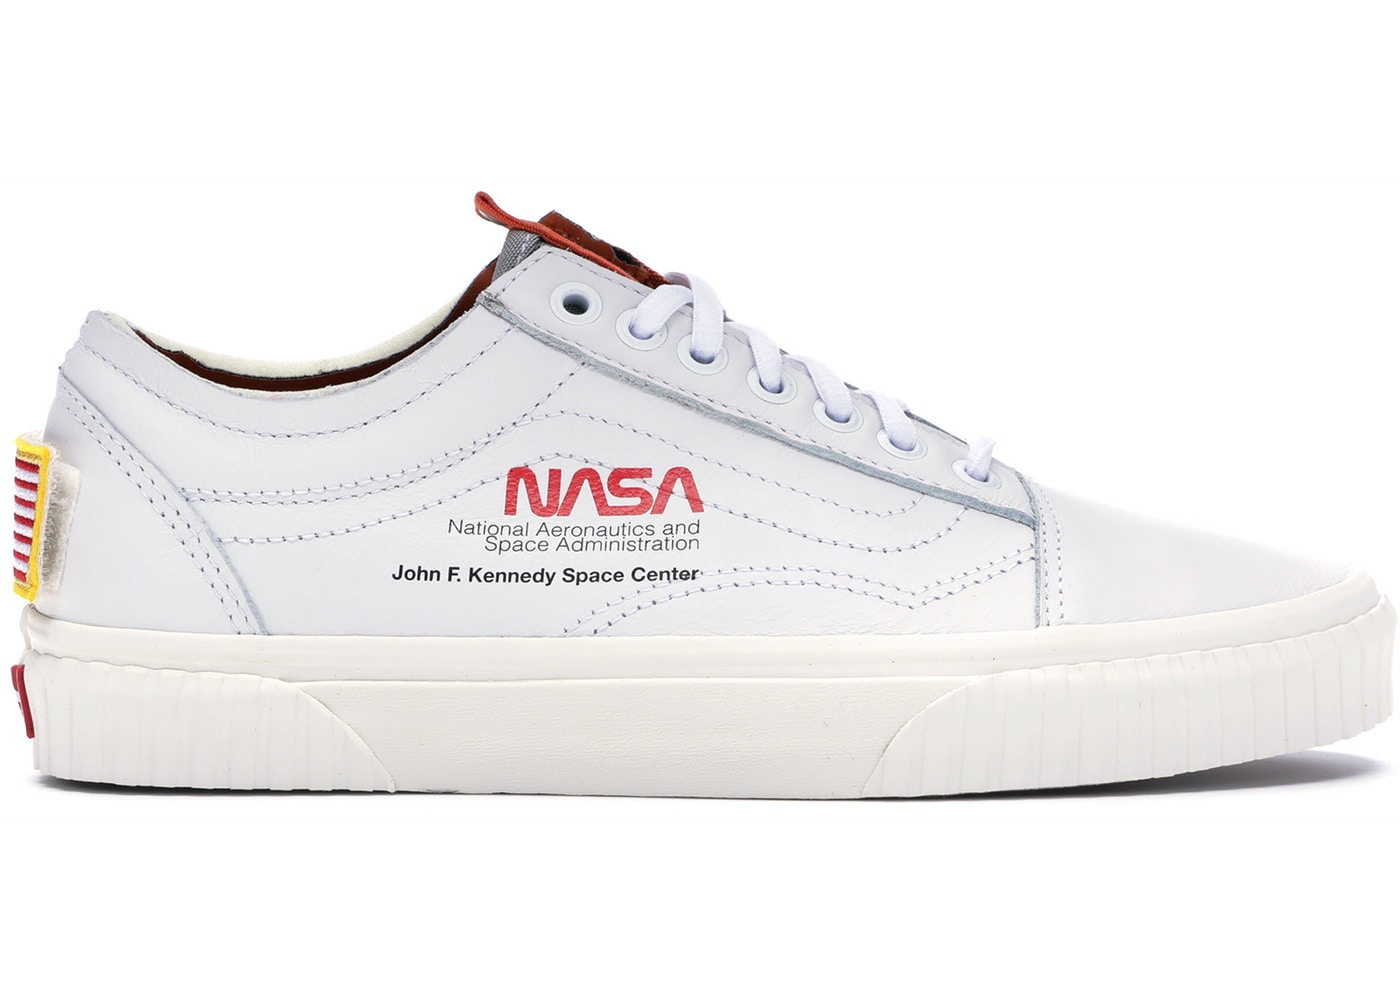 vans old skool nasa space voyager true white vn0a38g1up9. Black Bedroom Furniture Sets. Home Design Ideas